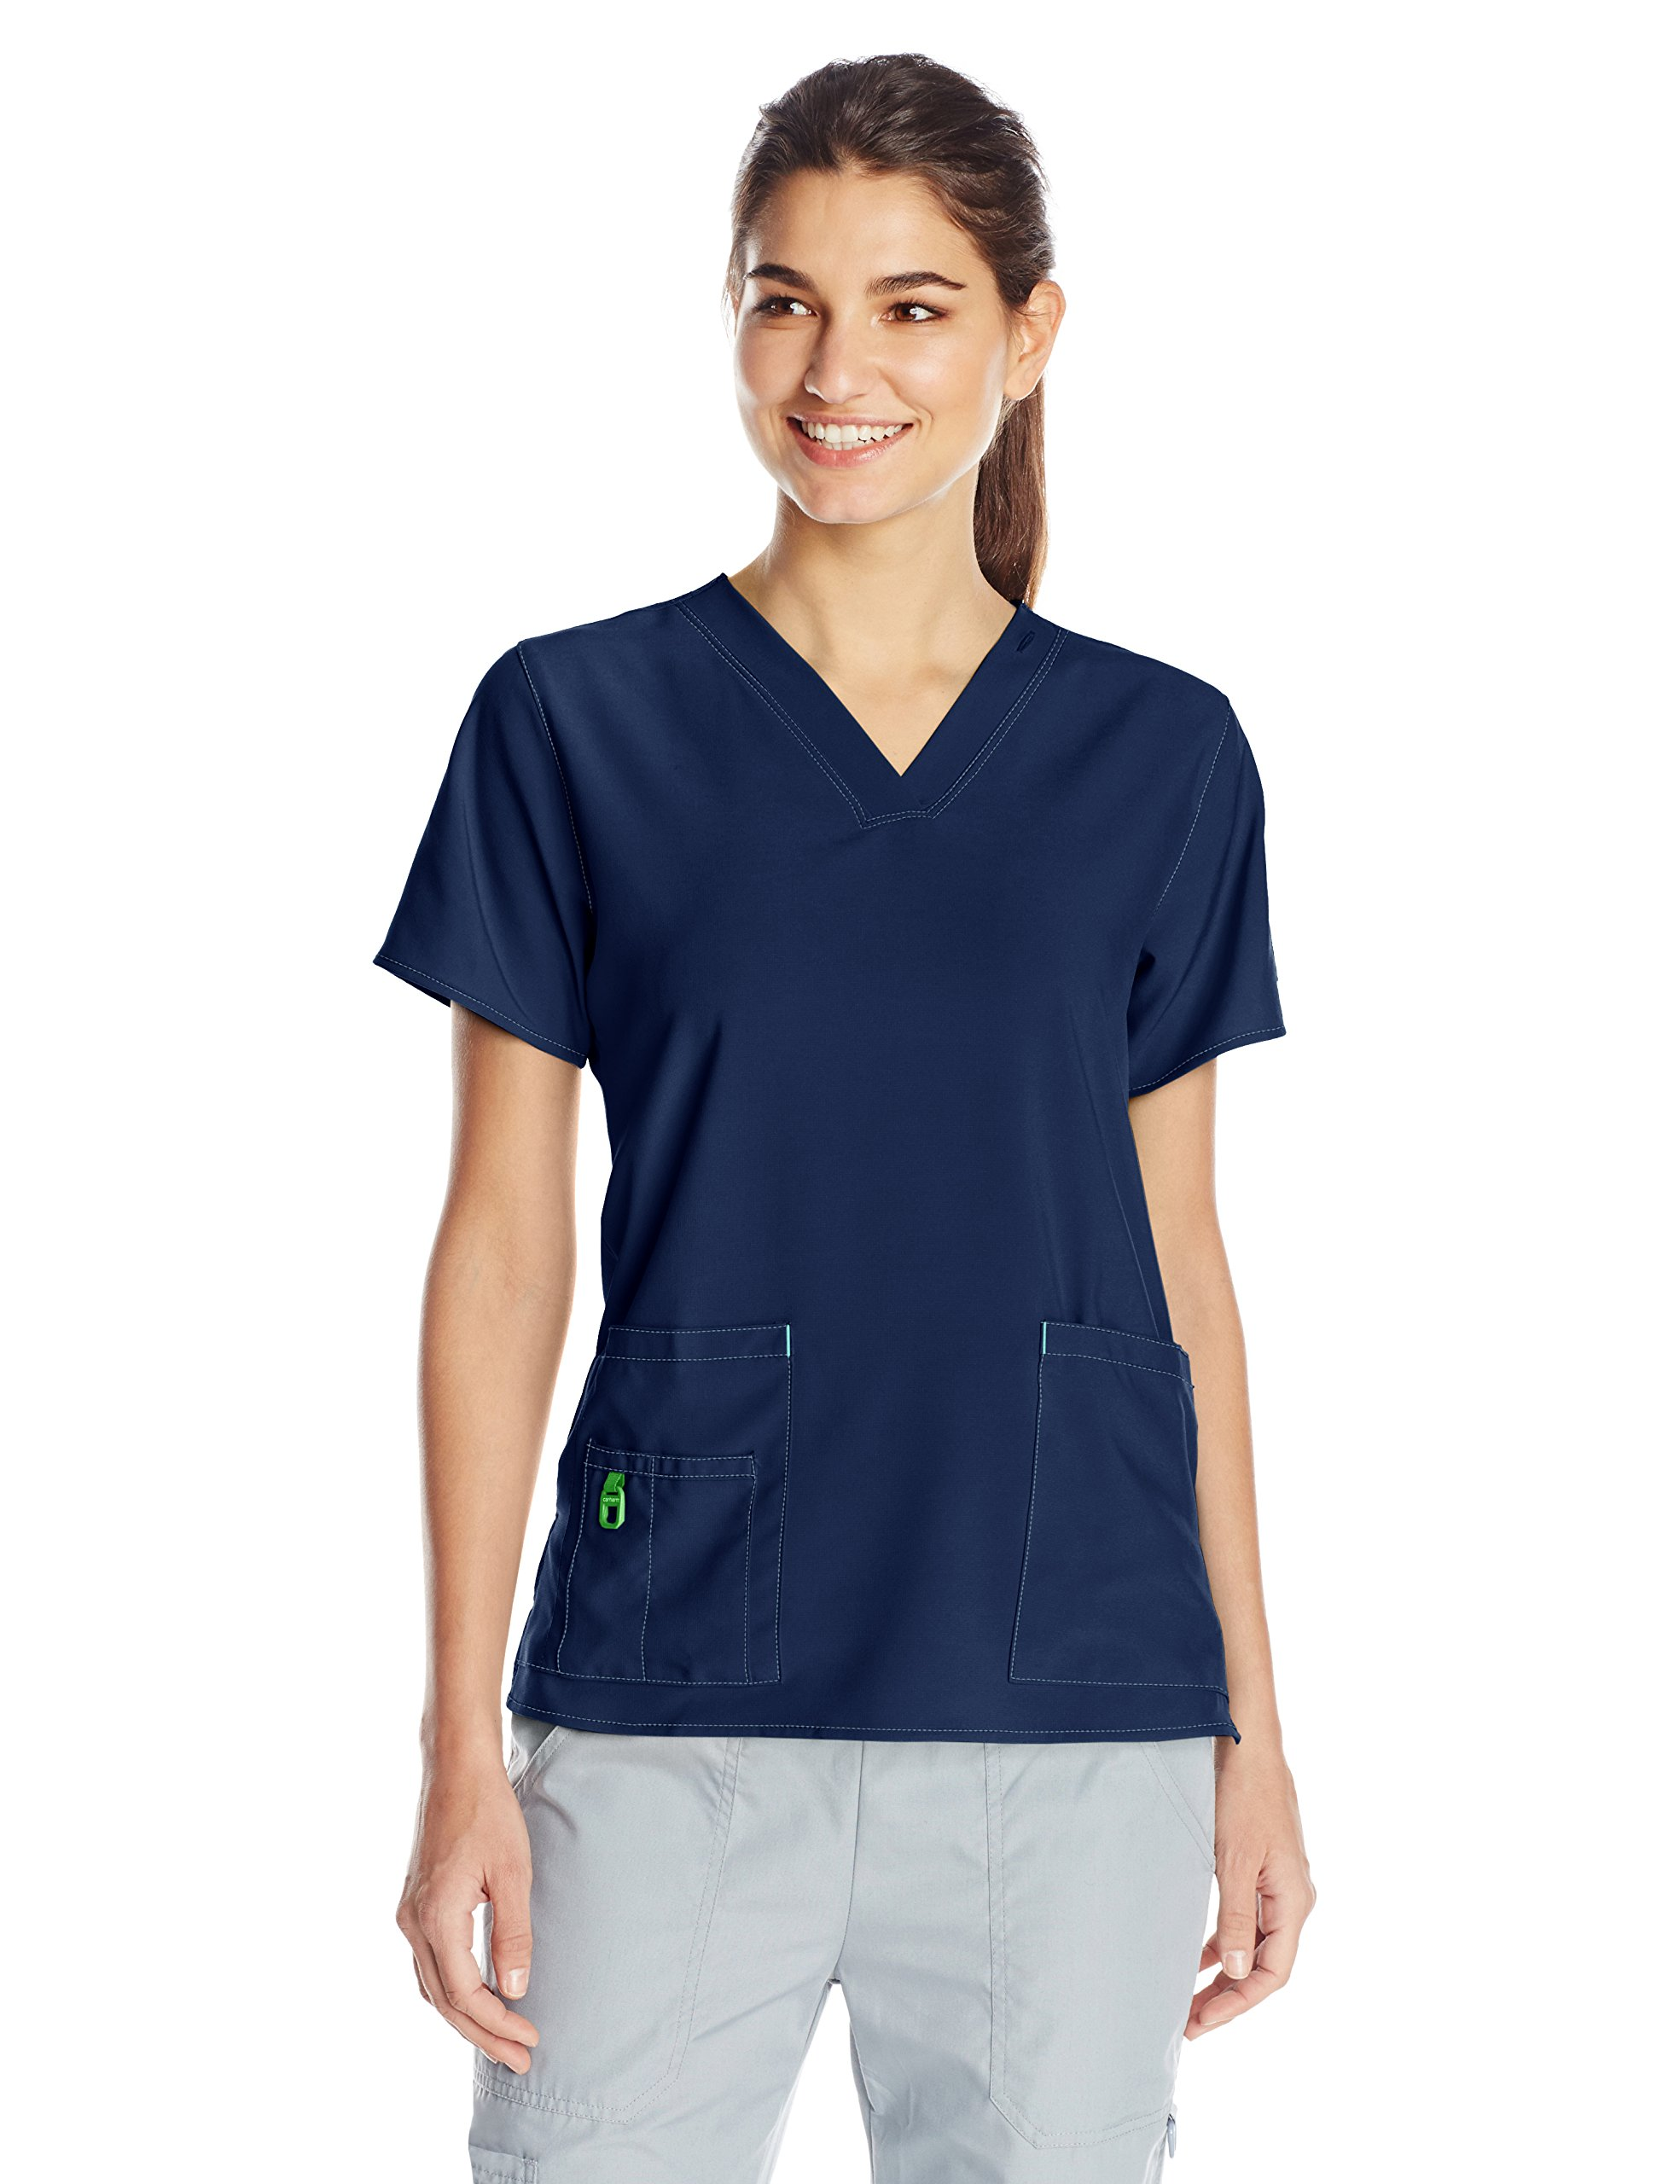 Carhartt Women's Cross-Flex Media Scrub Top, Navy, Large